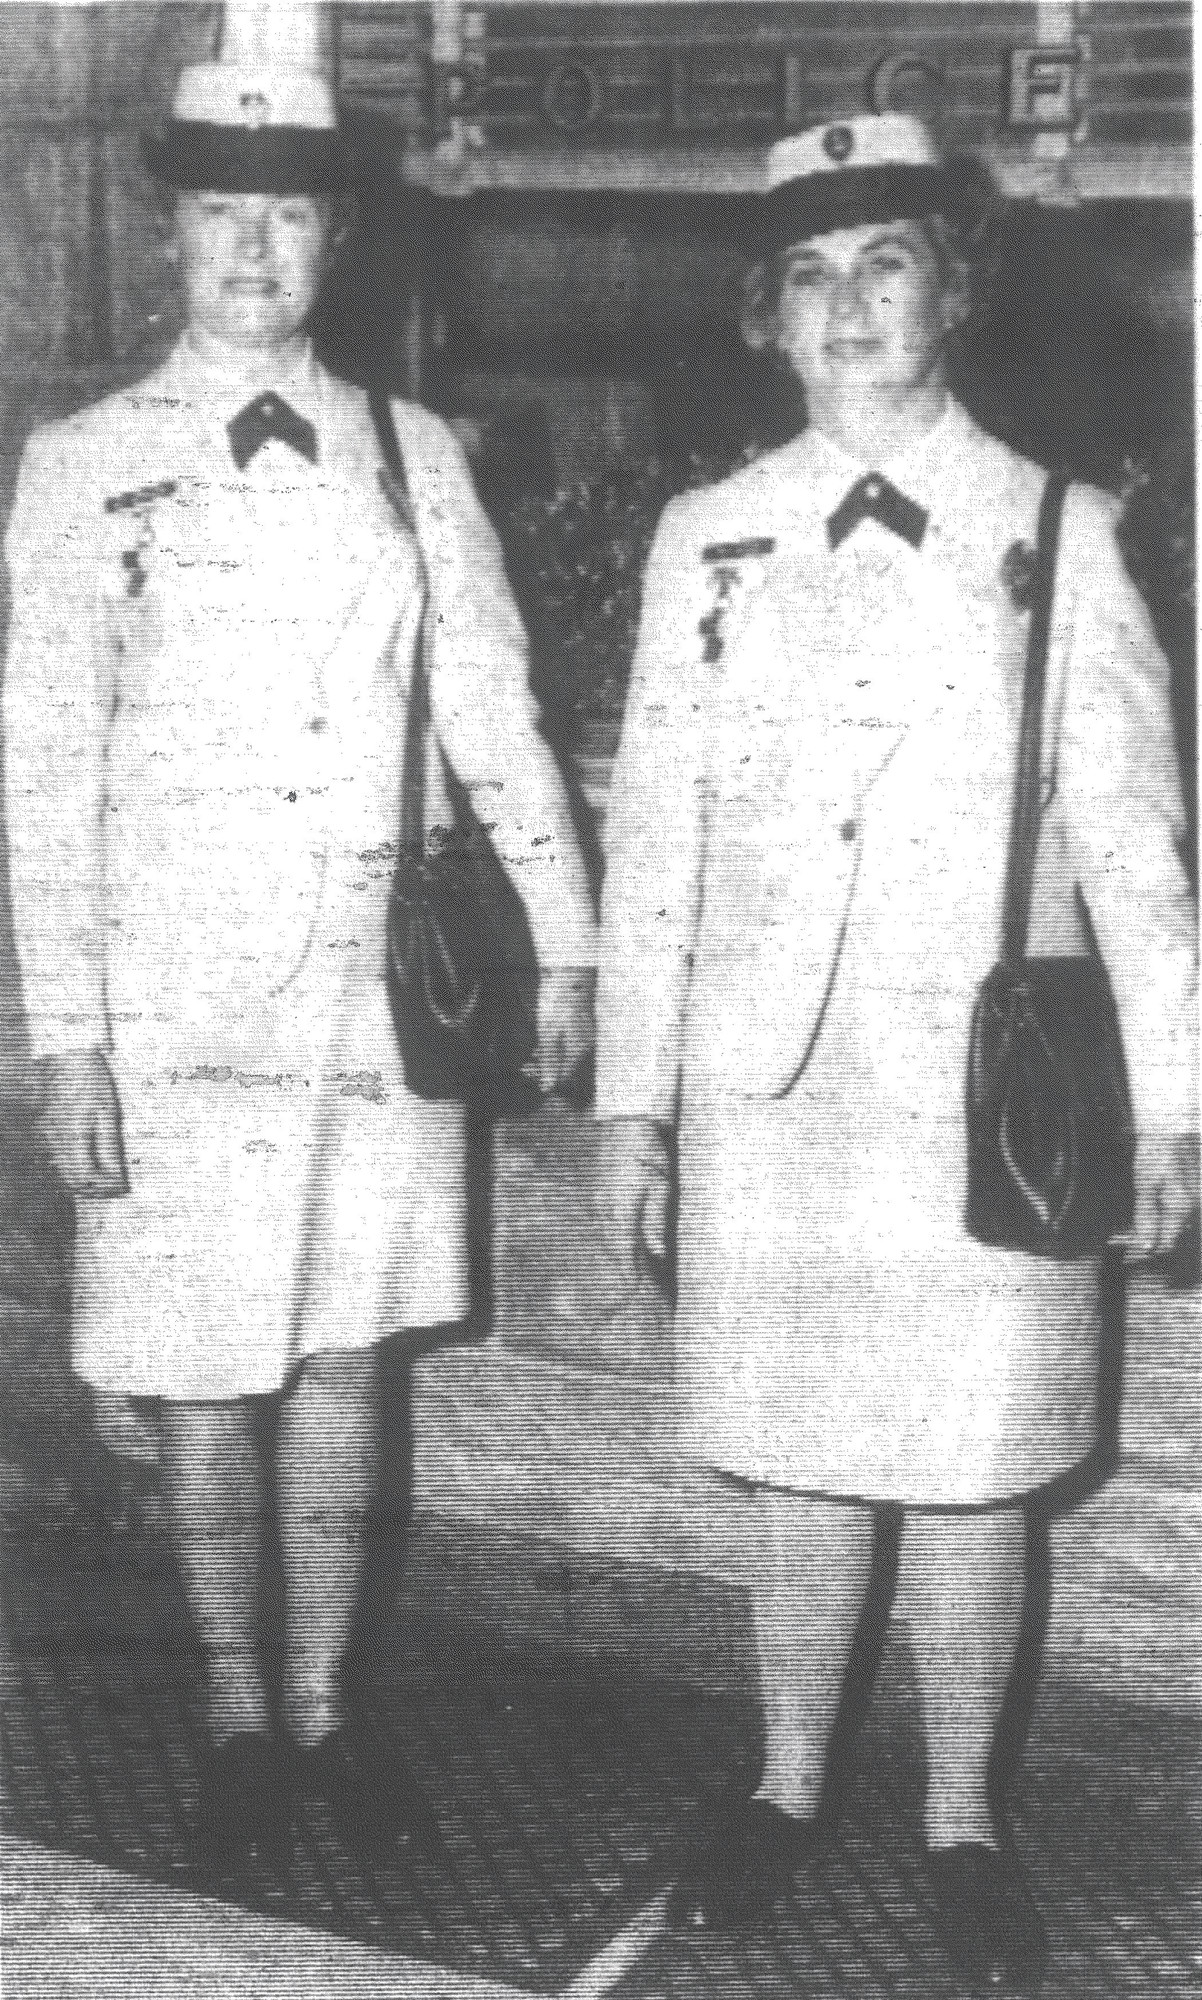 1968 - Shown in their summer attire are Mrs. Tippy Mixon and Mrs. Tony Bradley, members of Sumter Police Department. The new uniforms are lightweight blue-and-white seersucker trimmed with silver buttons. Completing the uniforms are blue-and-white Milan straw hats.